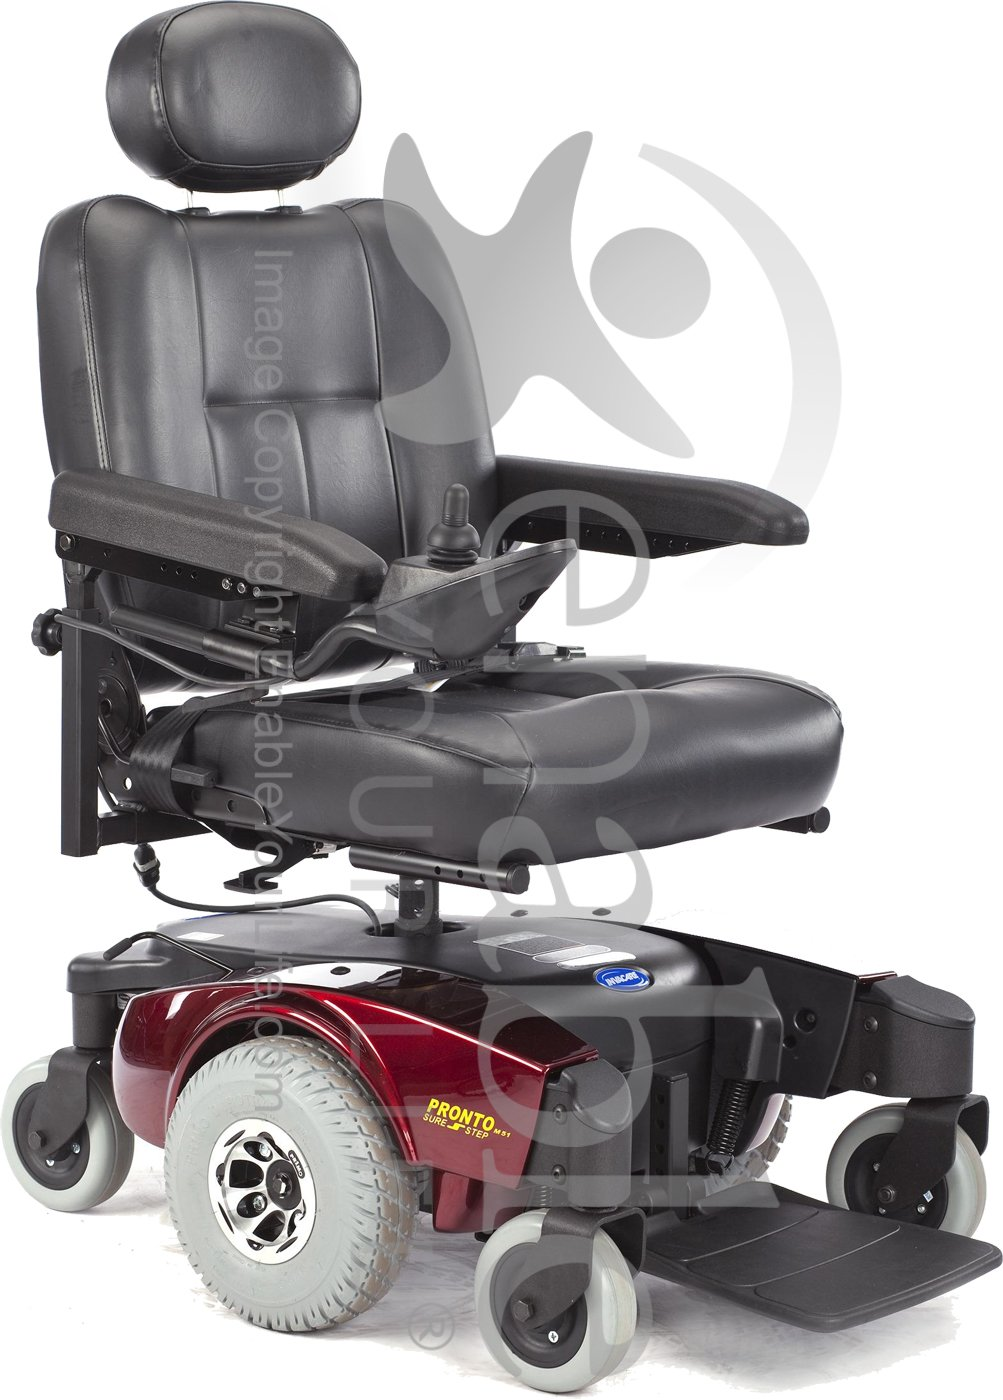 Invacare 174 Pronto 174 M51 Power Wheelchair With Office Style Seat